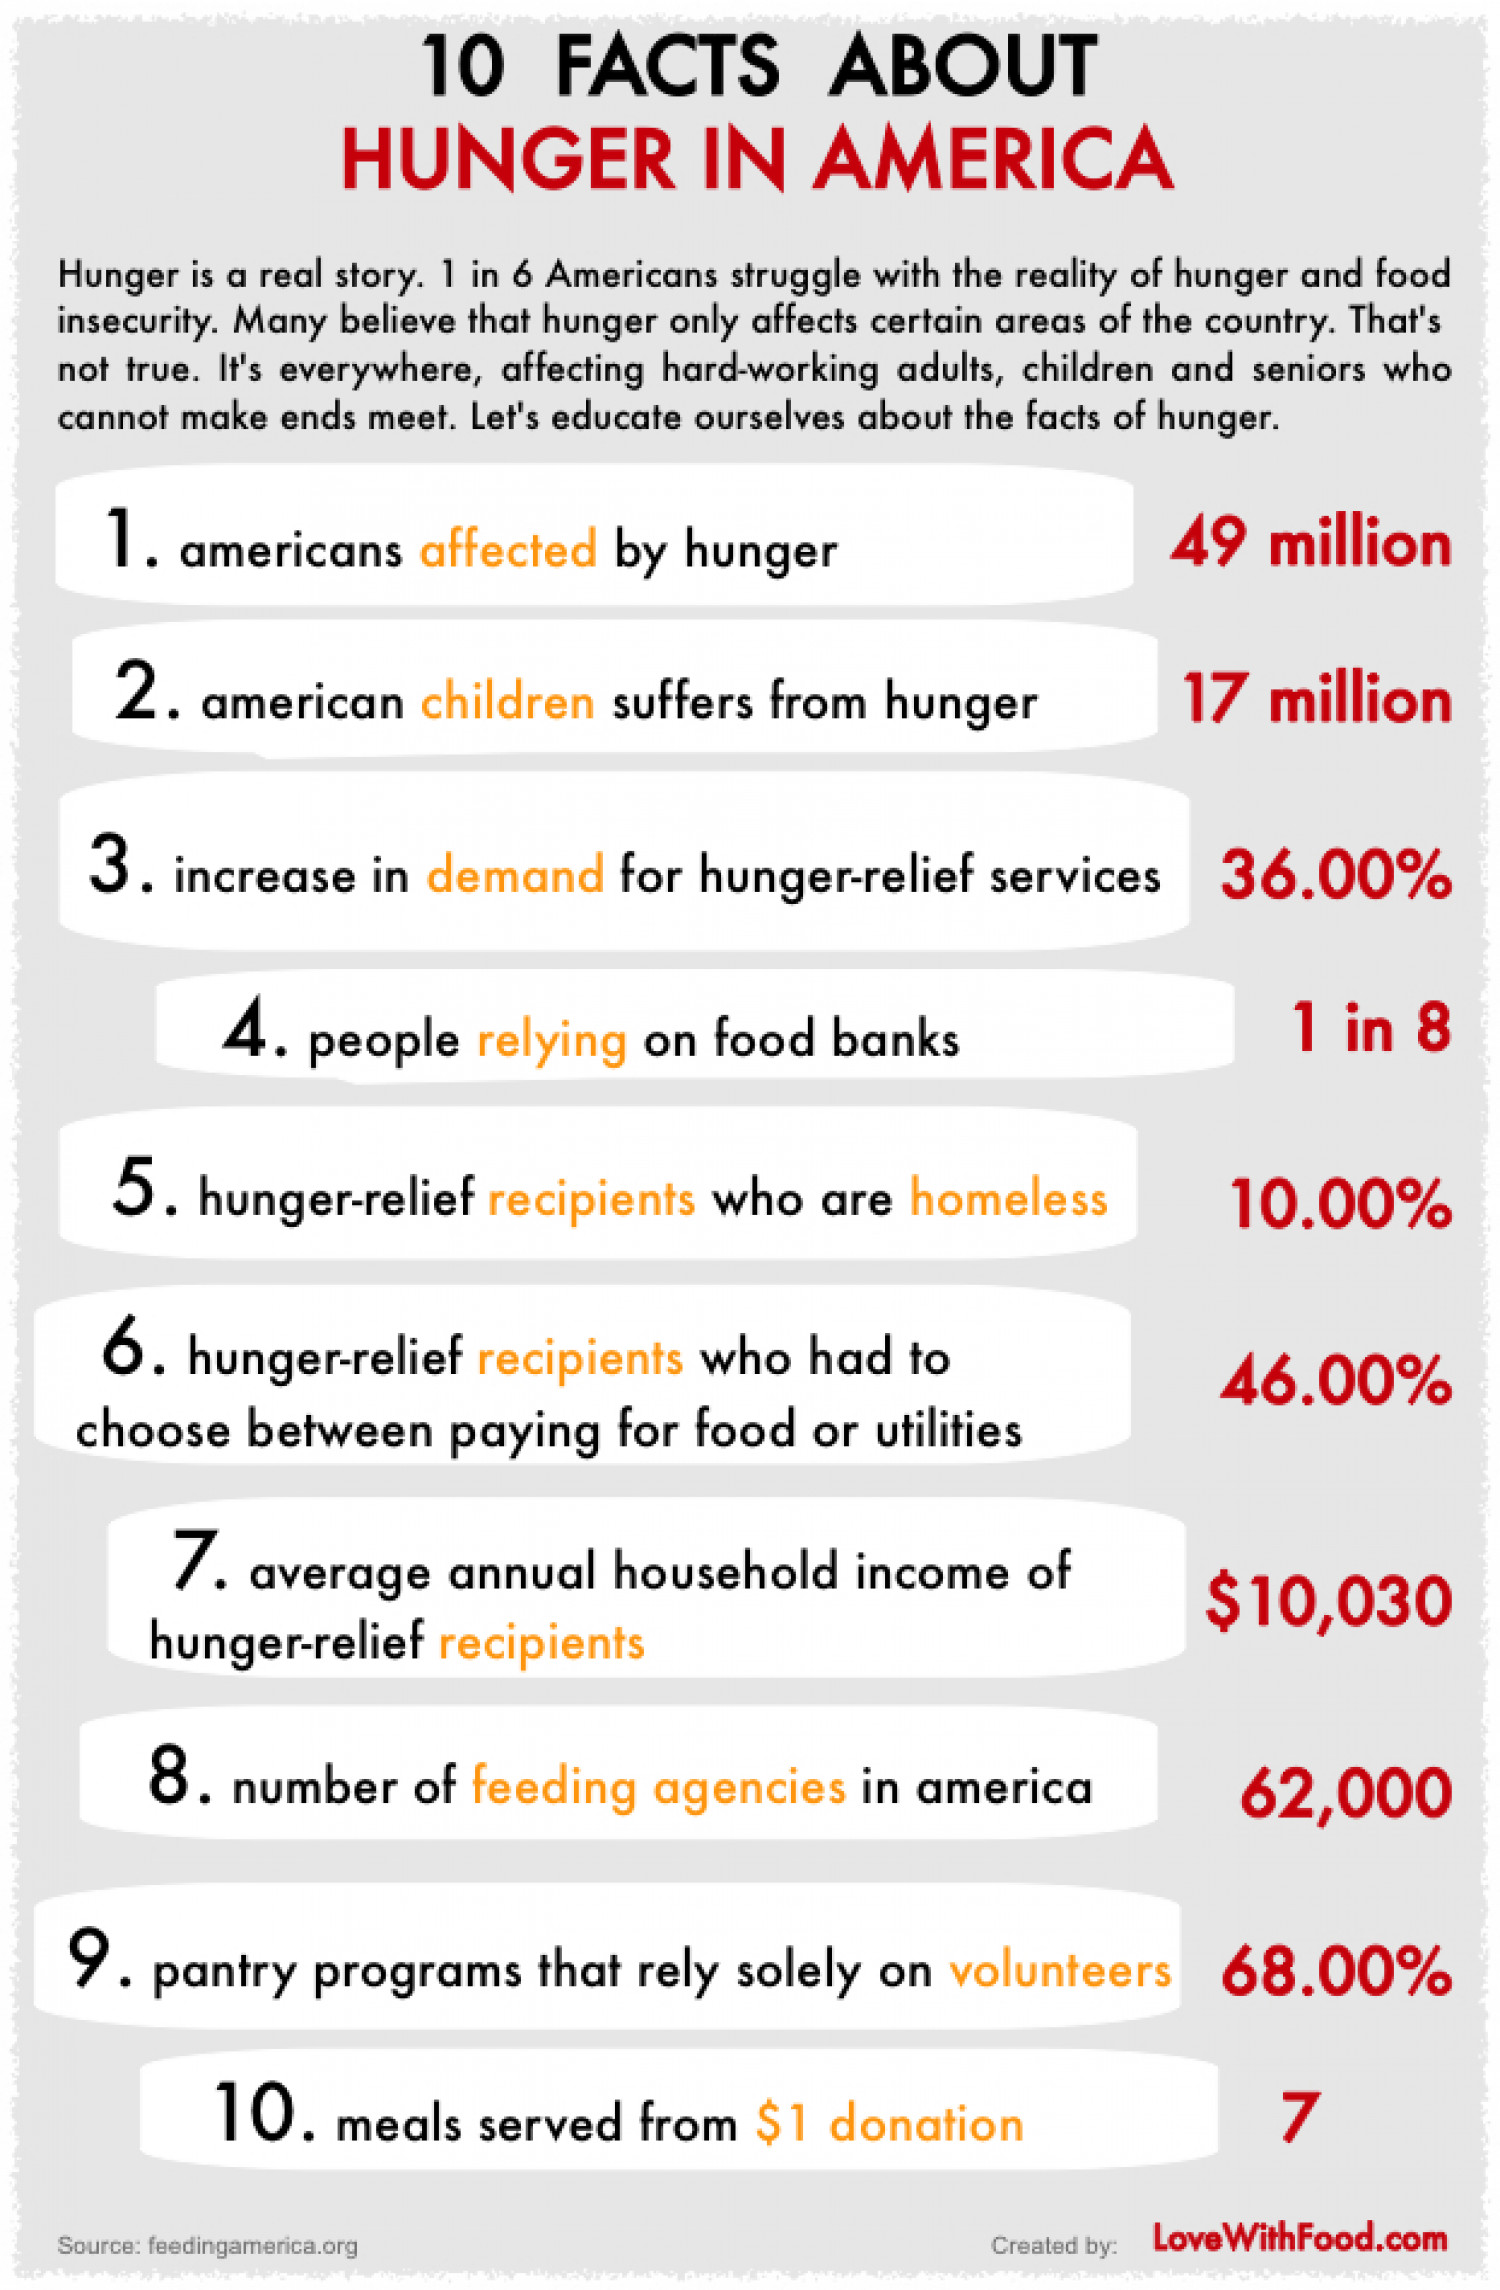 10 facts about hunger in america for American cuisine facts